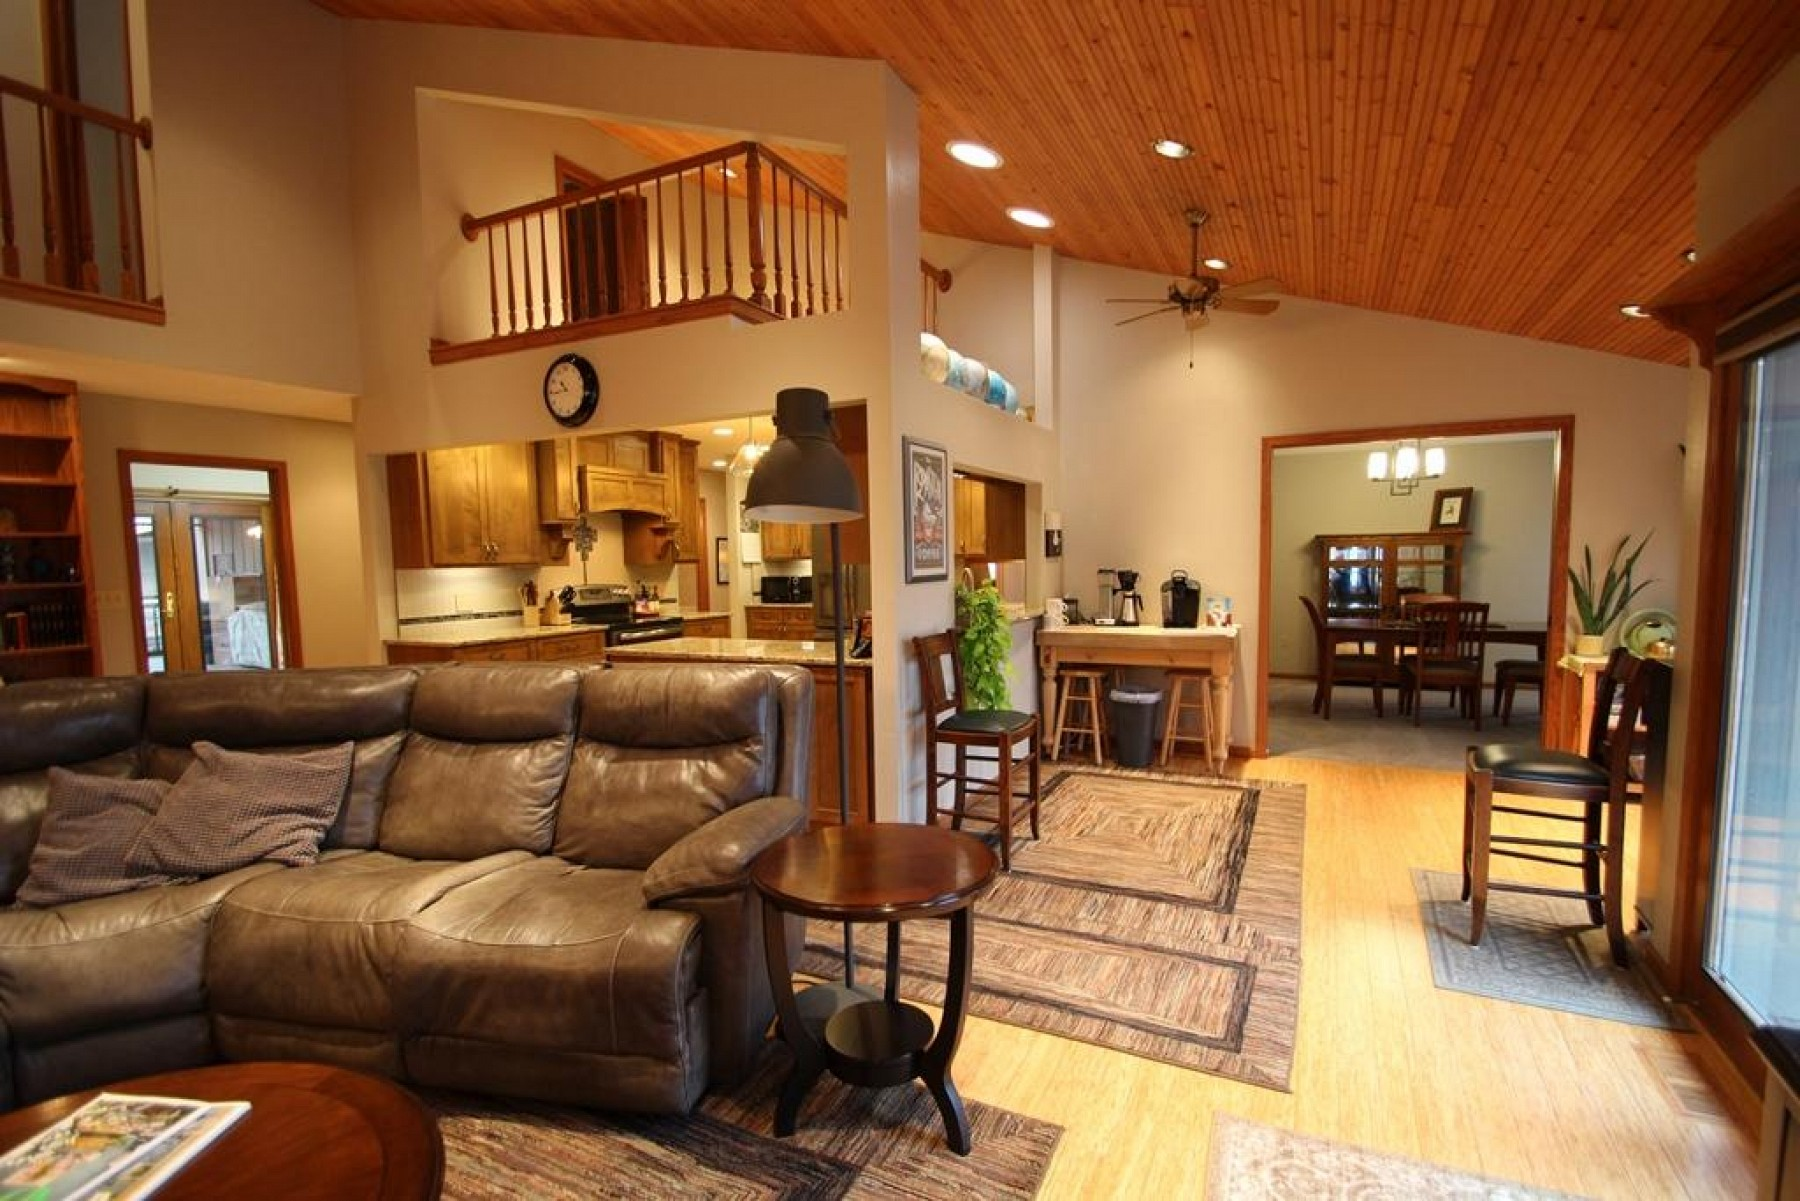 1504 SequoiaCourt, Brookings, SD 57006